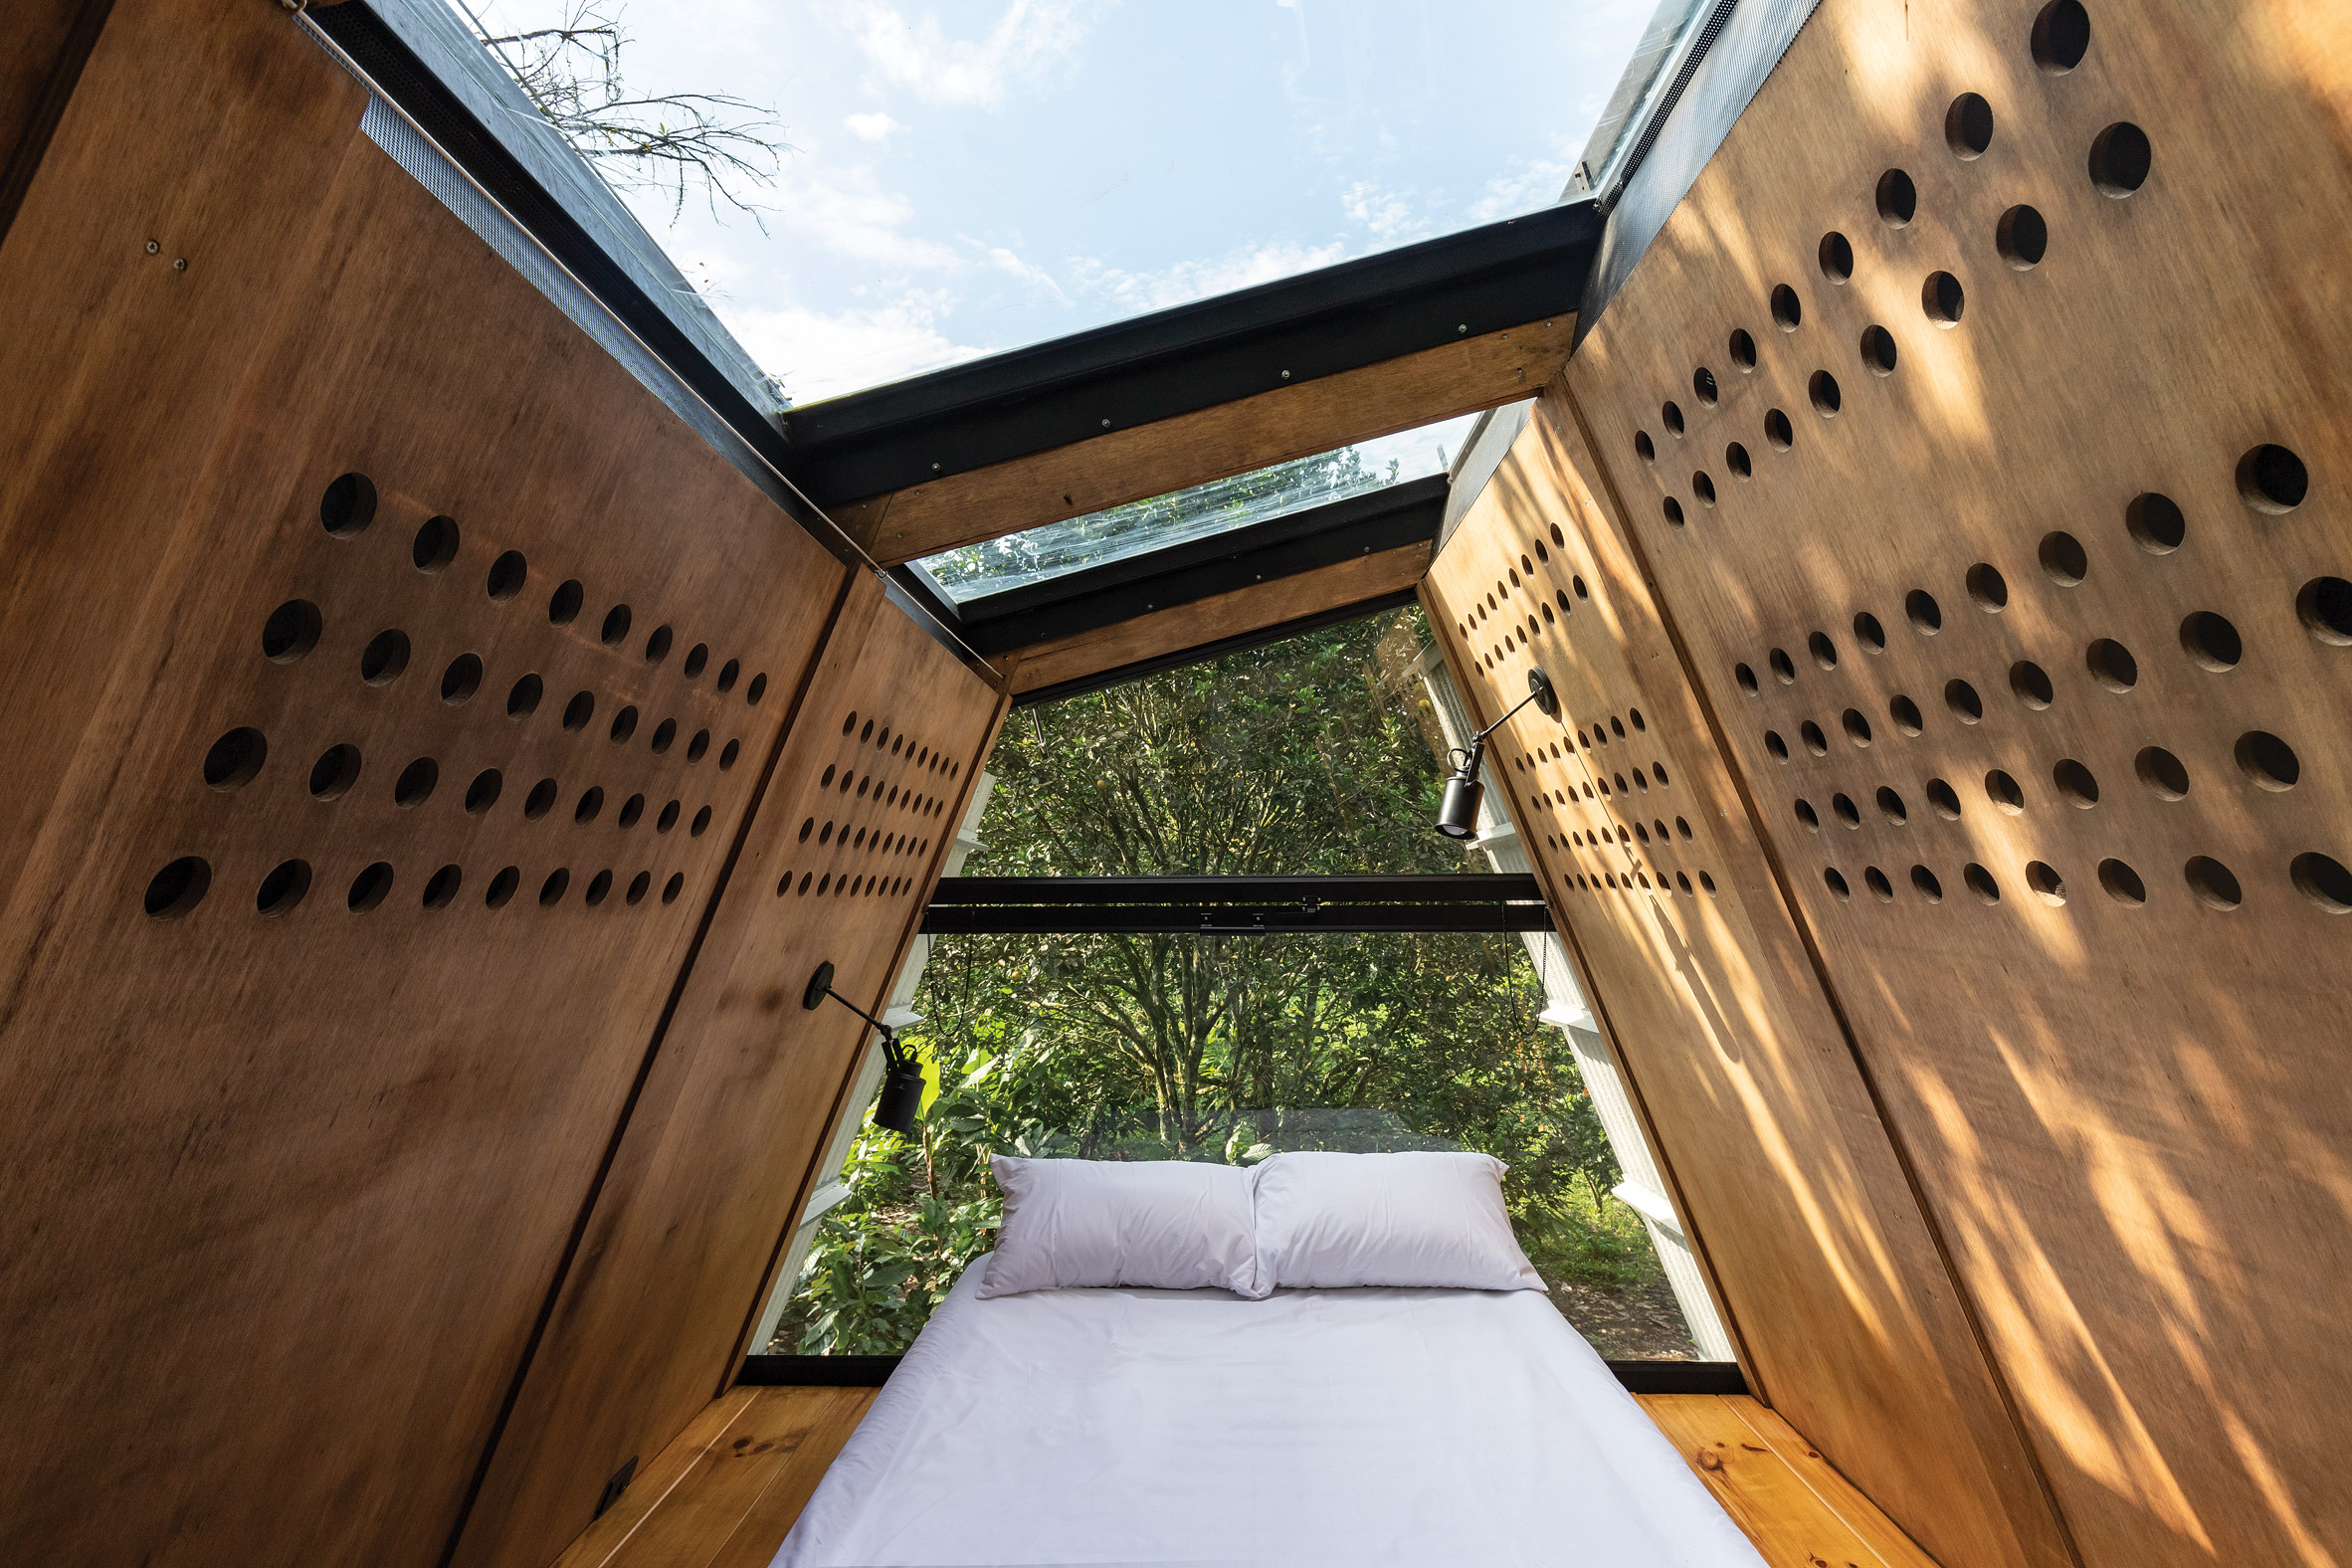 The bedroom inside the Huaira cabin by Diana Salvador and Javier Mera in Ecuador